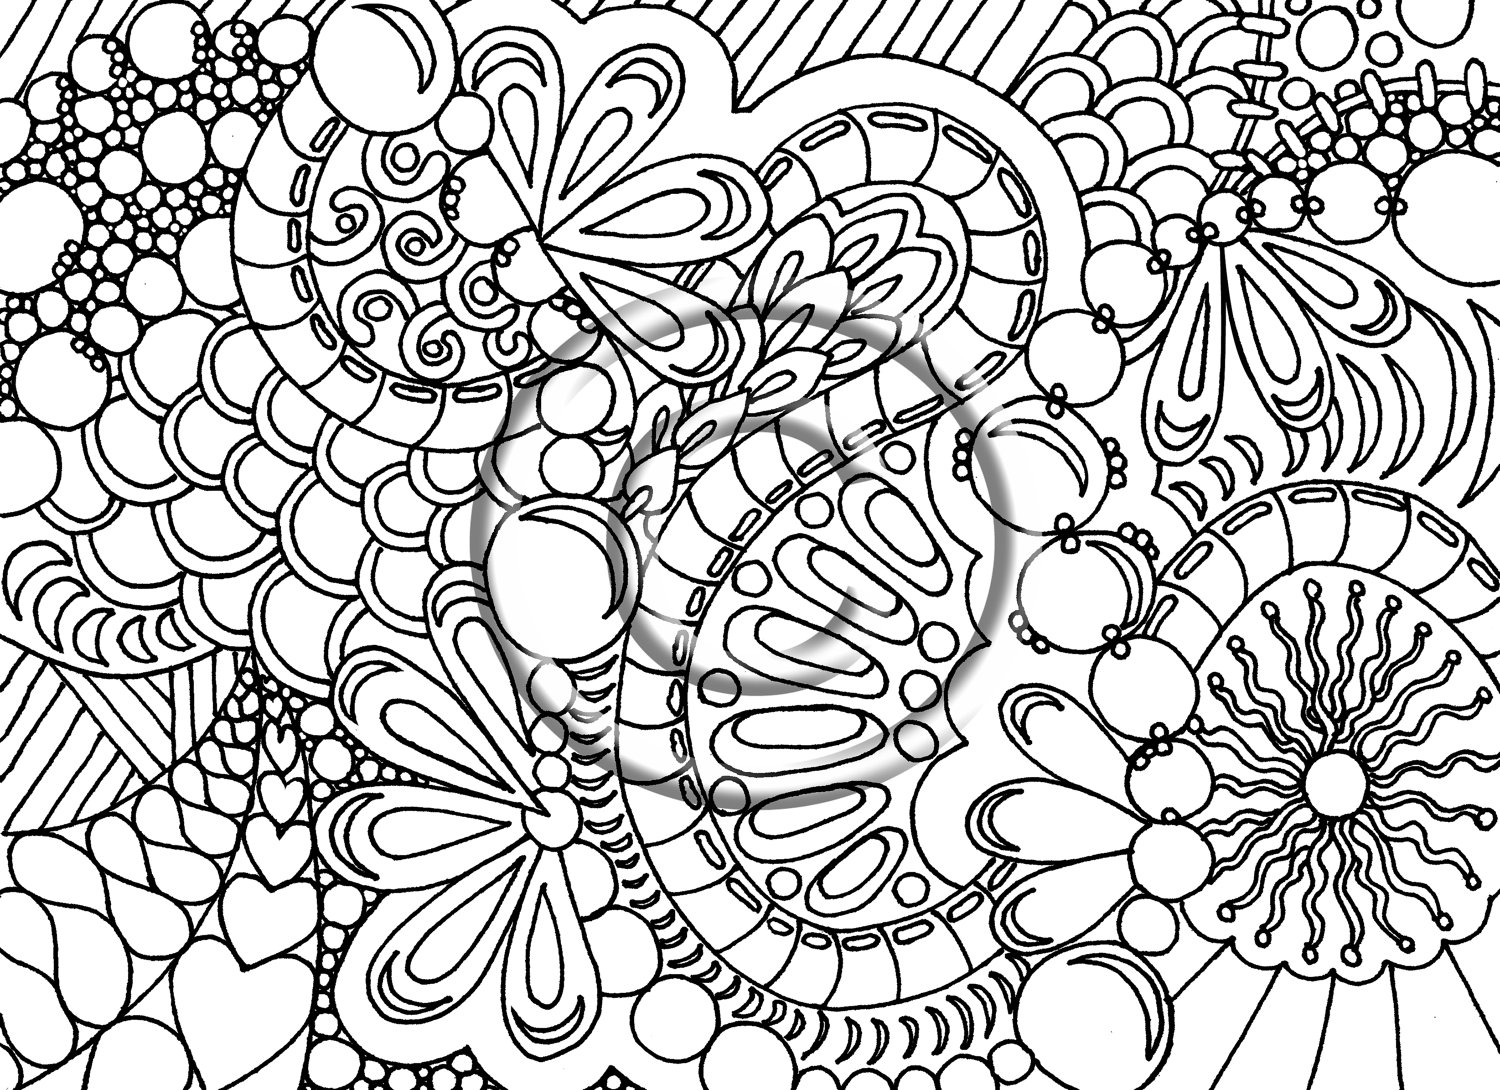 coloring page hard coloring pages for adults difficult animals 44 coloring hard page coloring